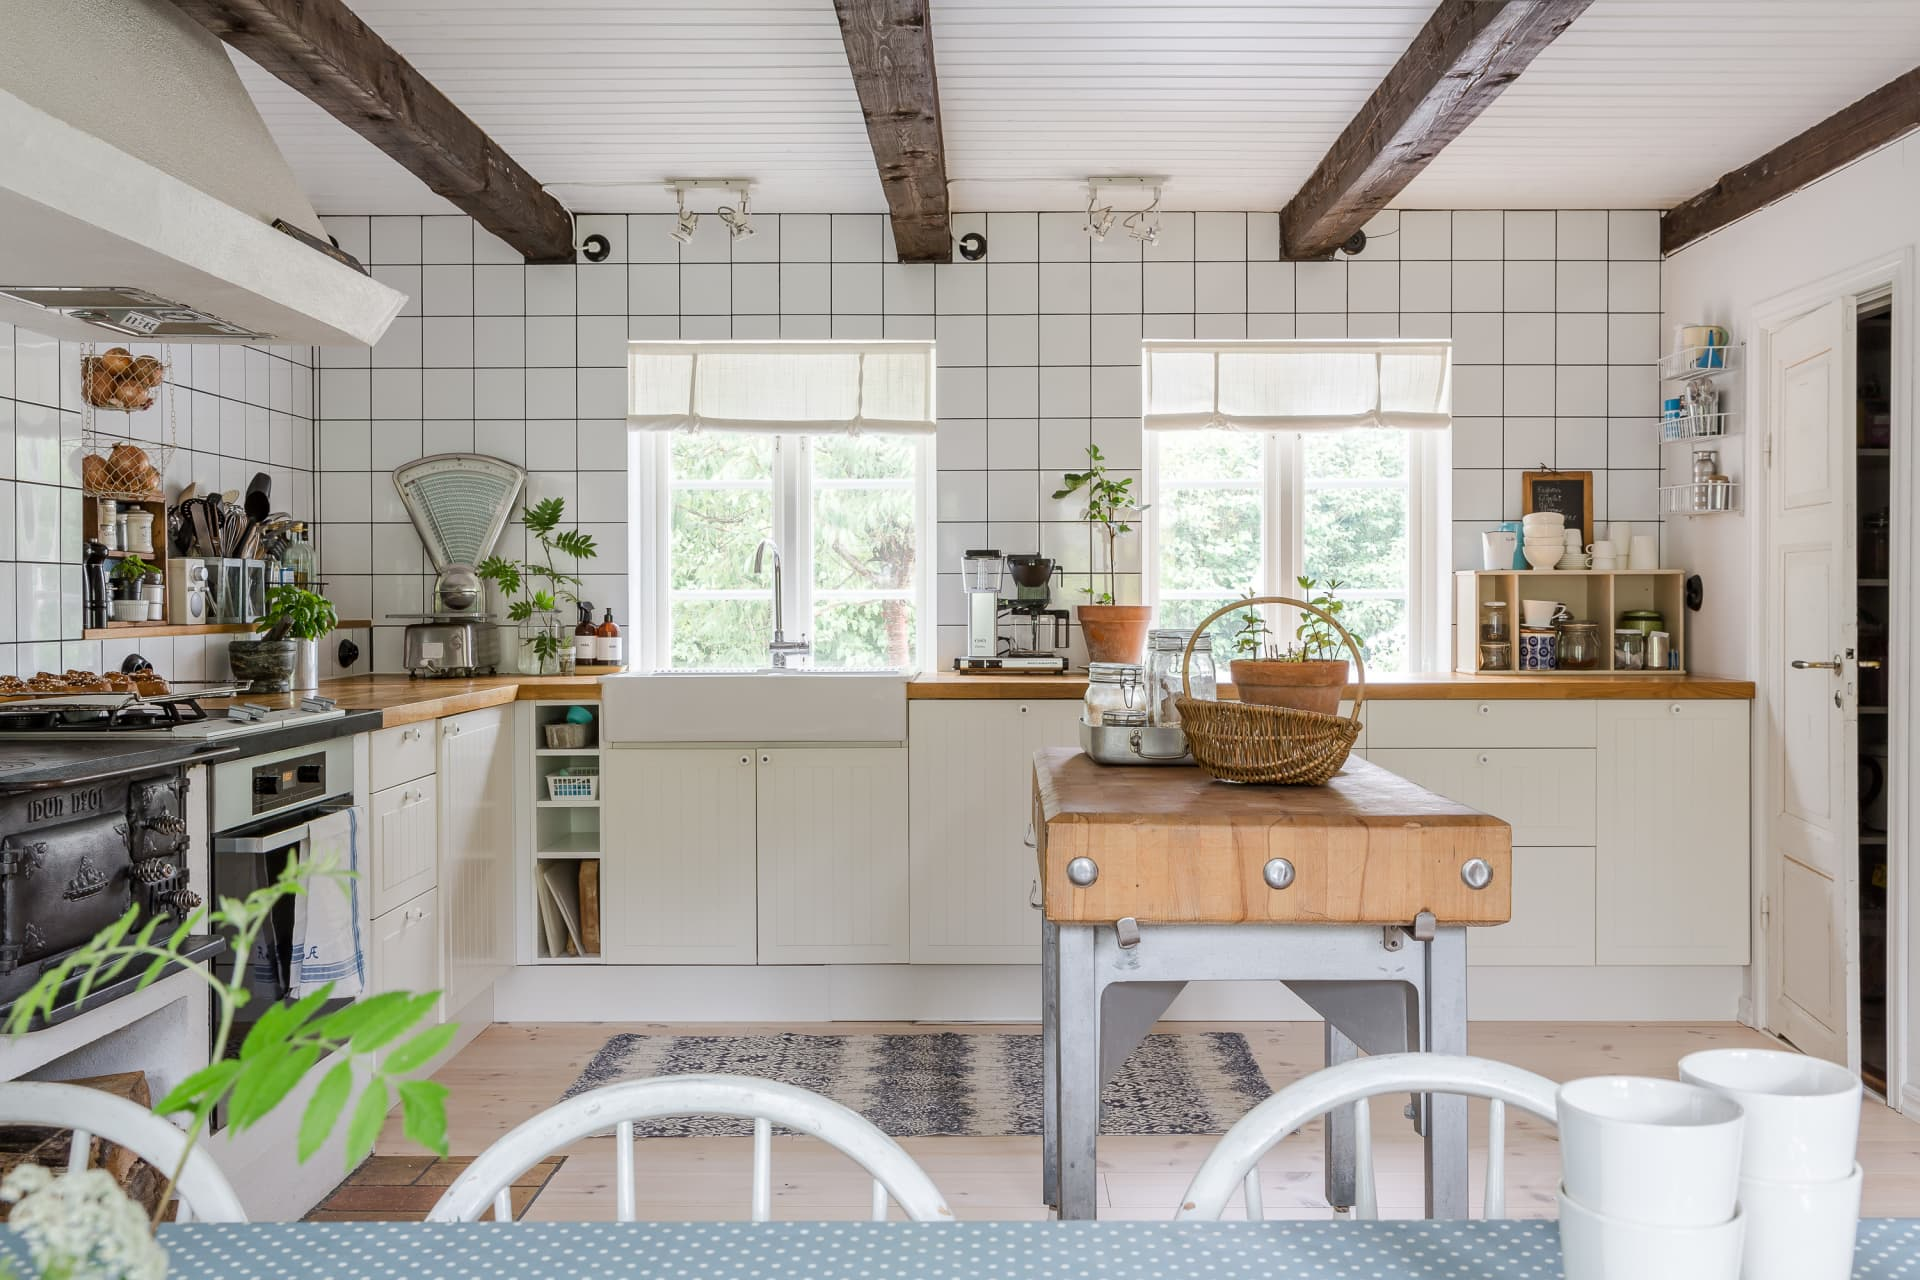 The kitchen, built at the same time as the addition, is from Ikea. The family was determined to have a wood stove in the kitchen, since they knew there had been one in the old homestead. The kitchen island is made of an old well-kept butcher's block bought at a secondhand store.